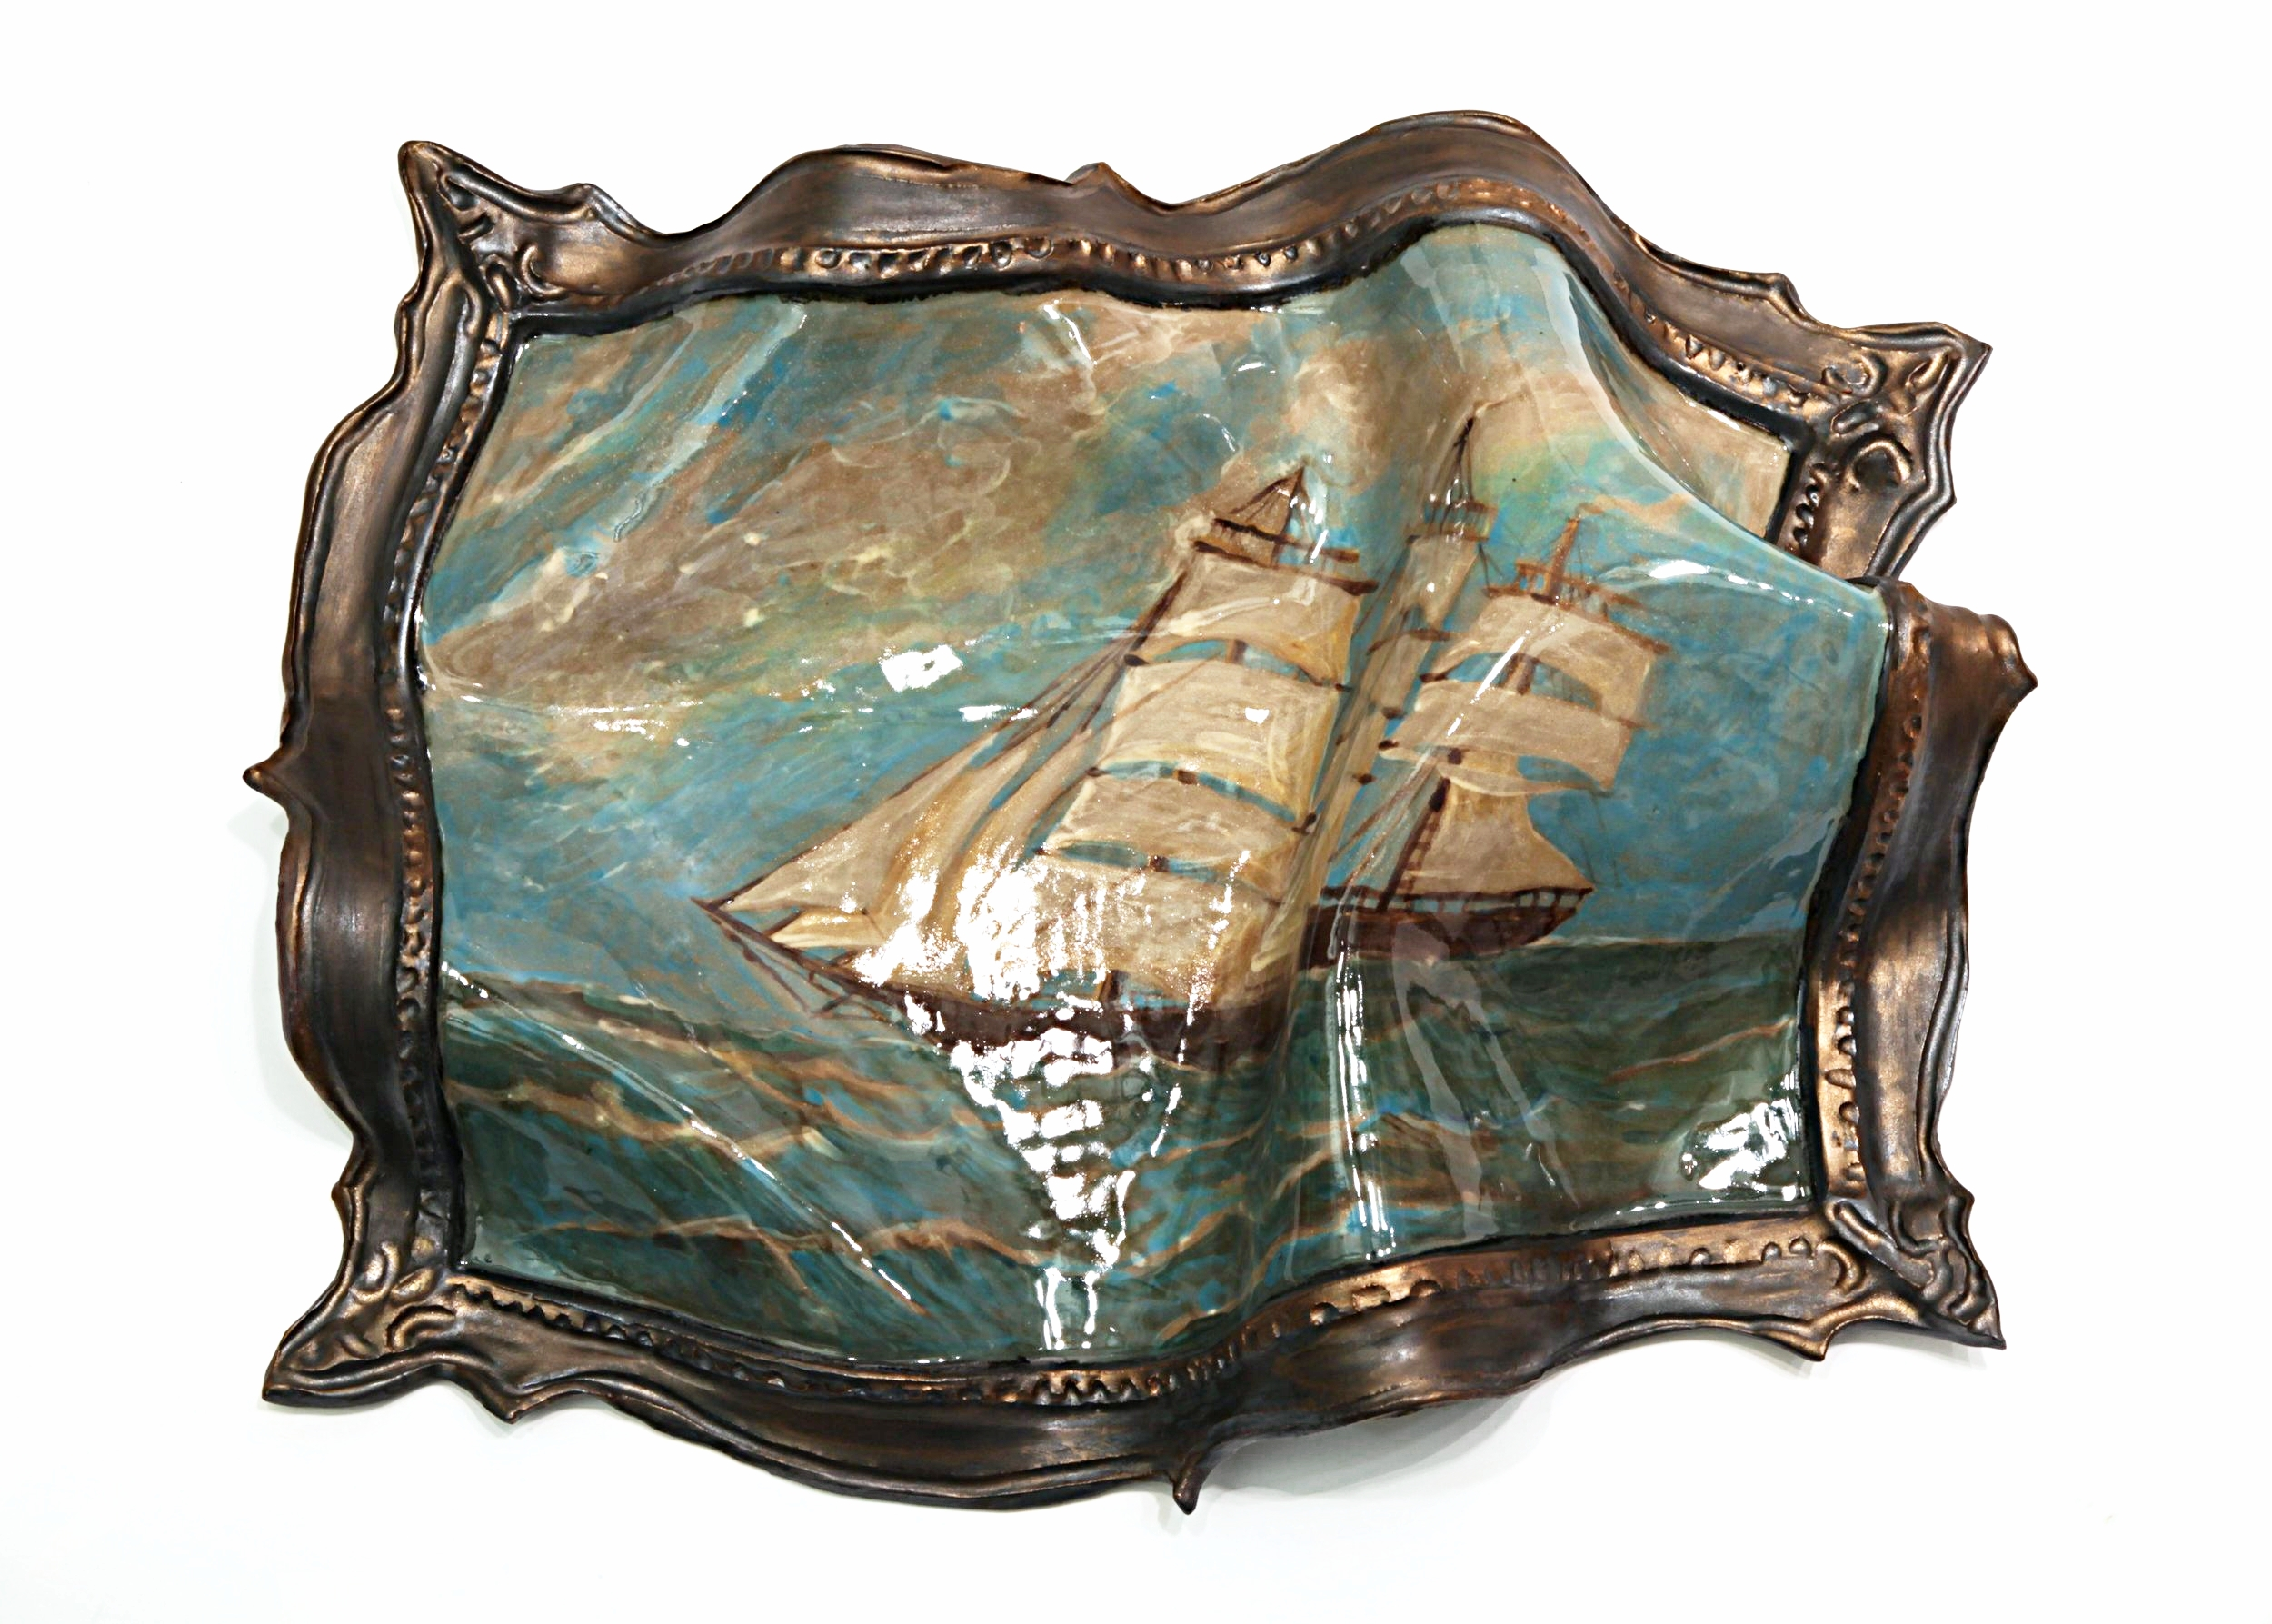 Copy of Warped Clipper Ship